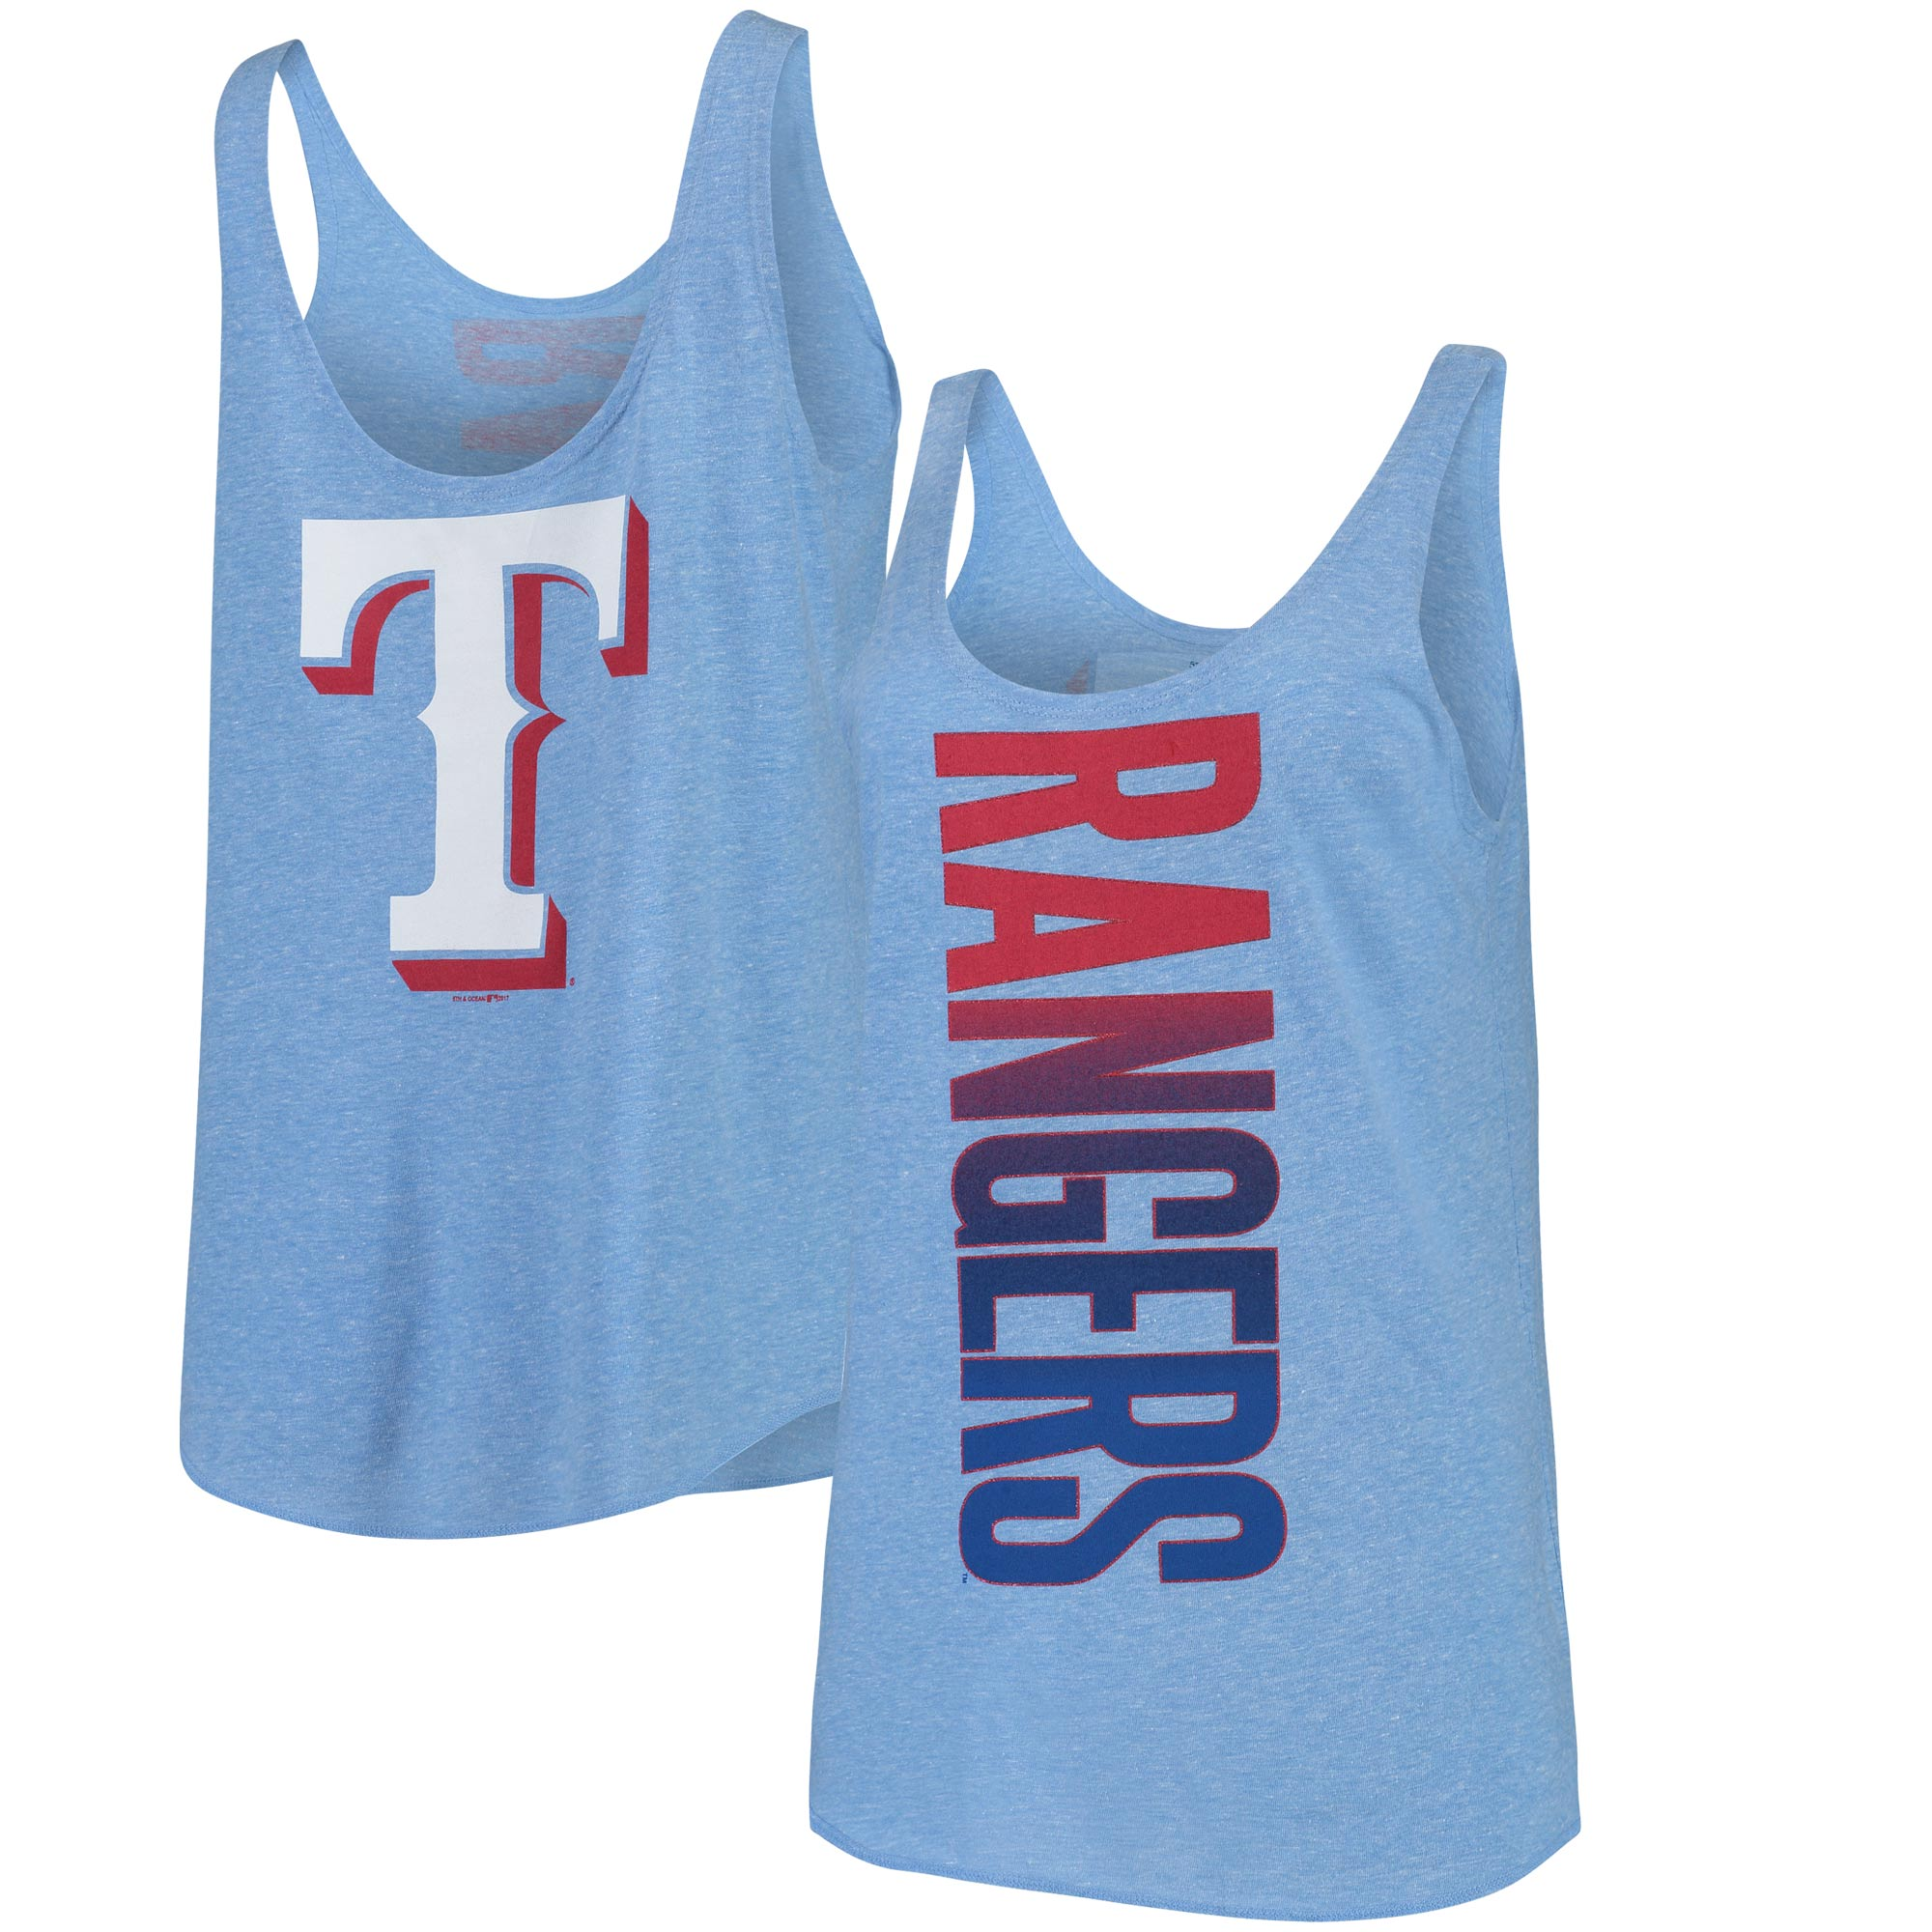 Texas Rangers 5th & Ocean by New Era Women's Tri-Blend Jersey Reversible Scoop Neck Tank Top - Royal